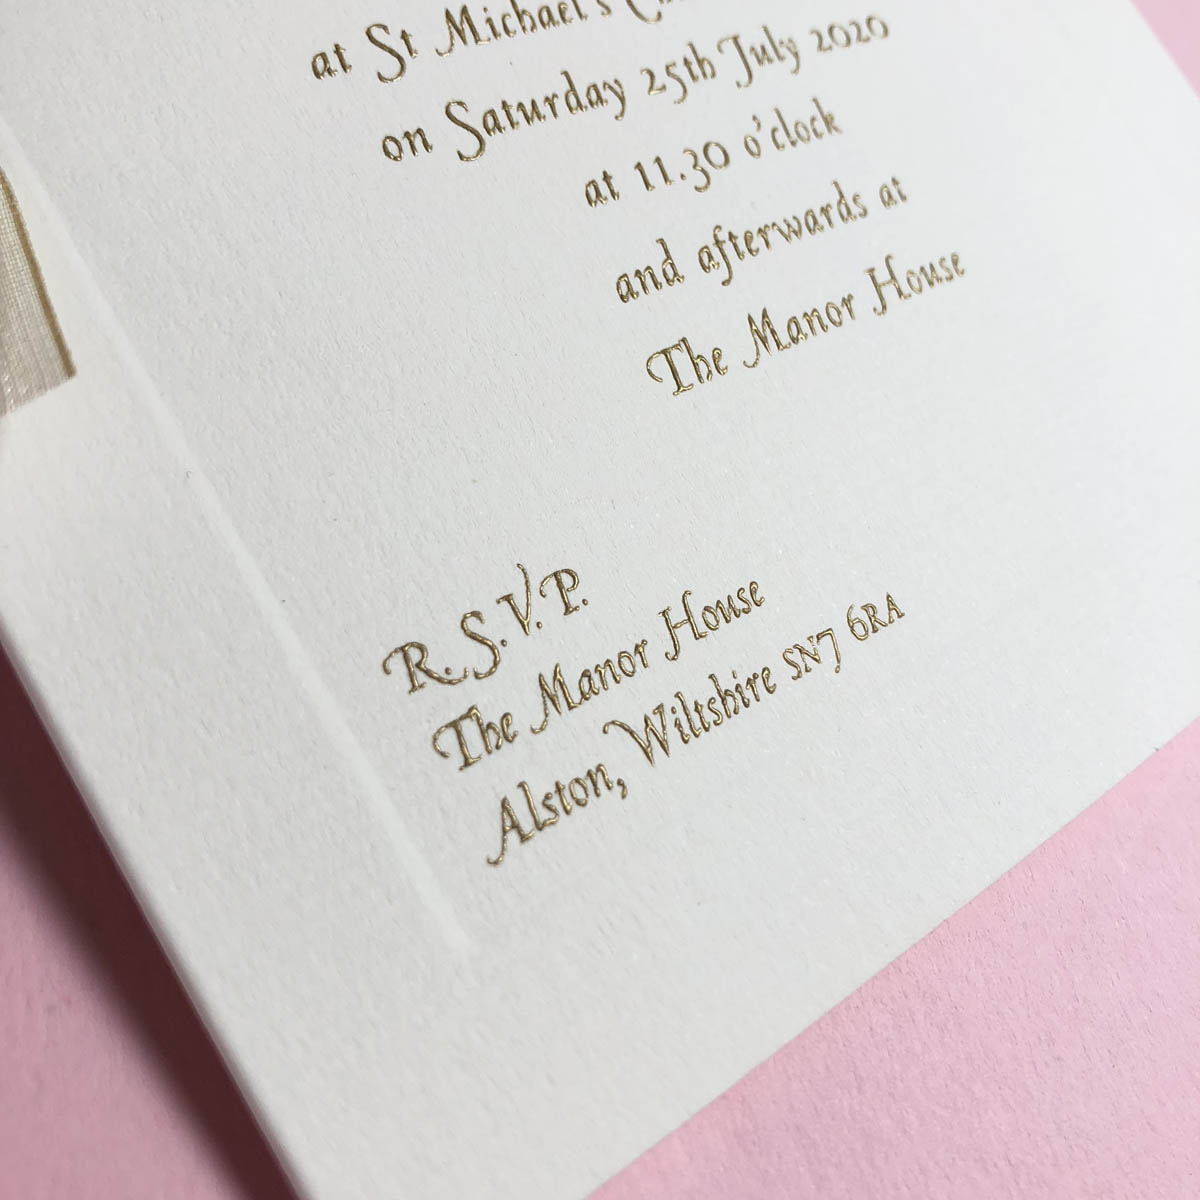 Sultan wedding invitations